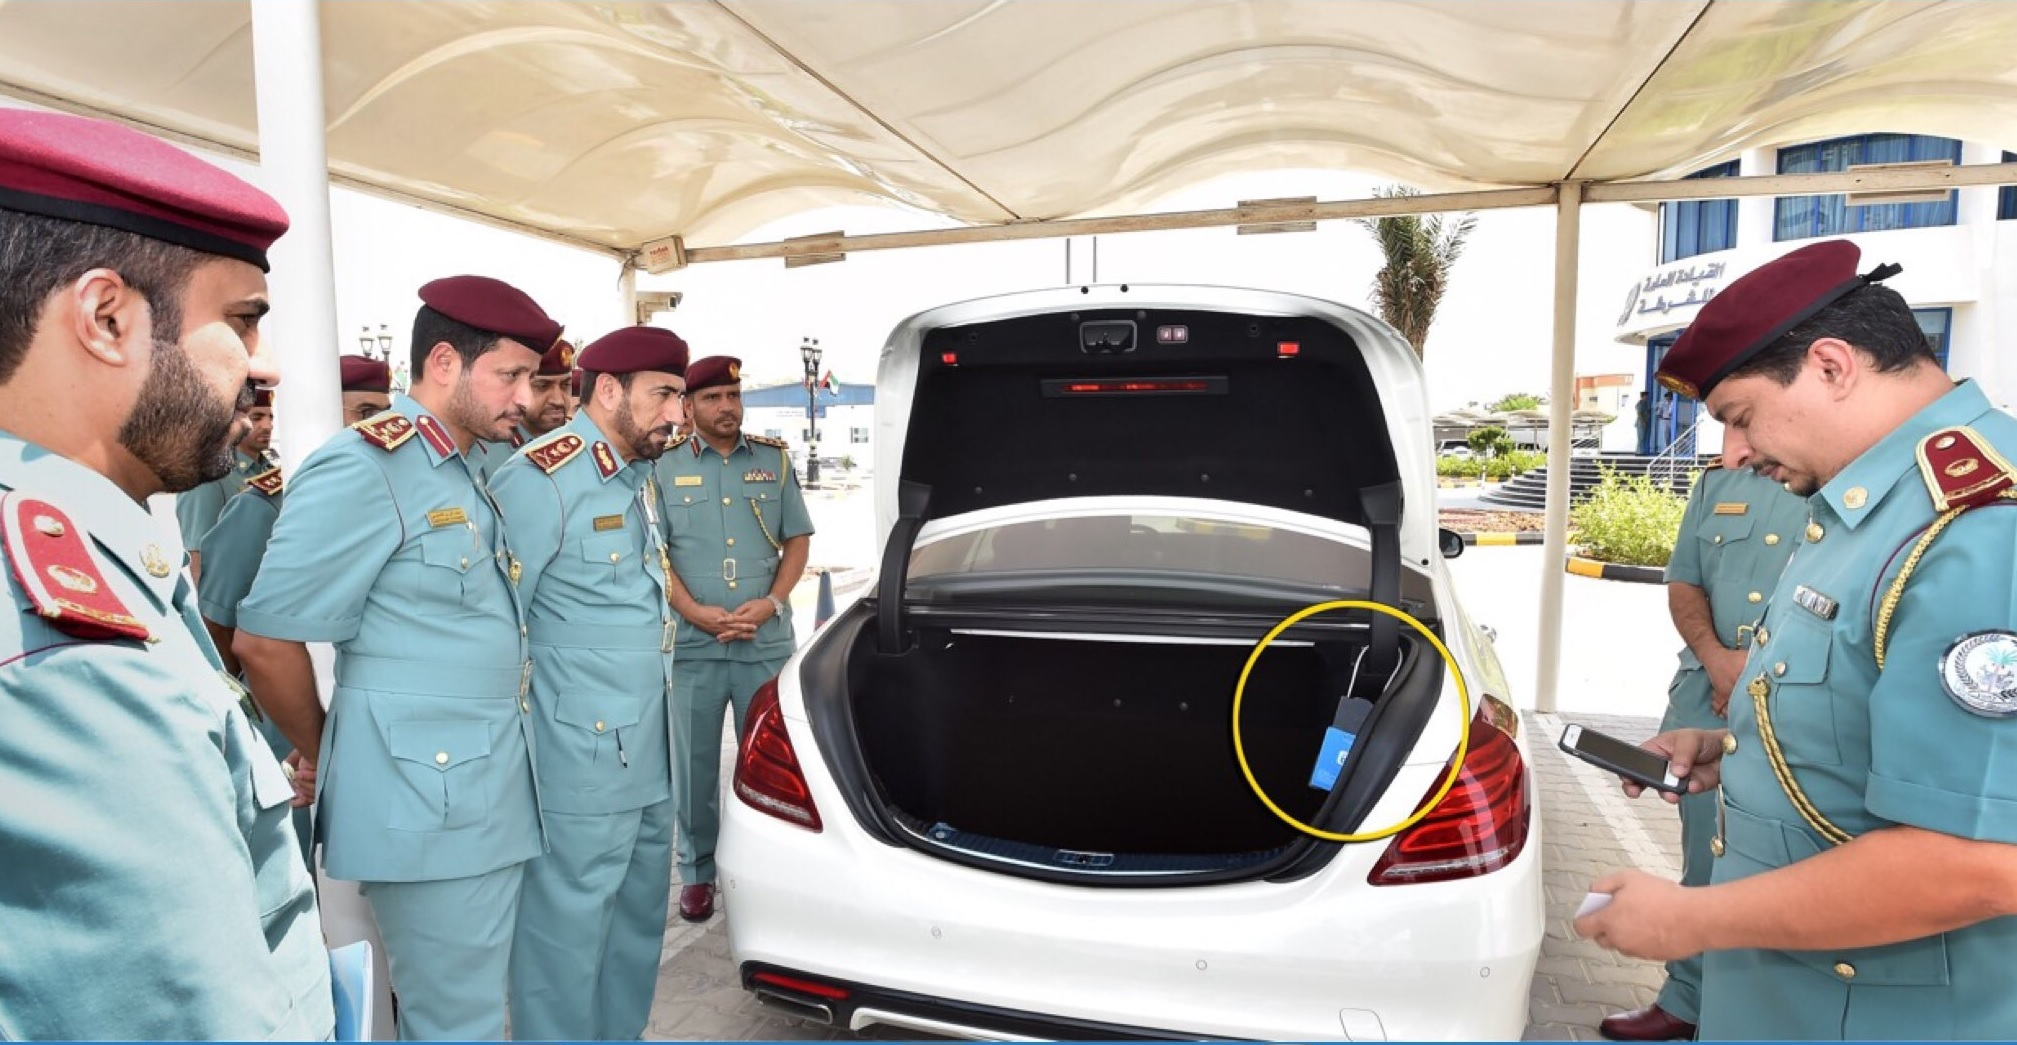 A new service to impound the vehicles of traffic violators in their homes has been launched in Sharj